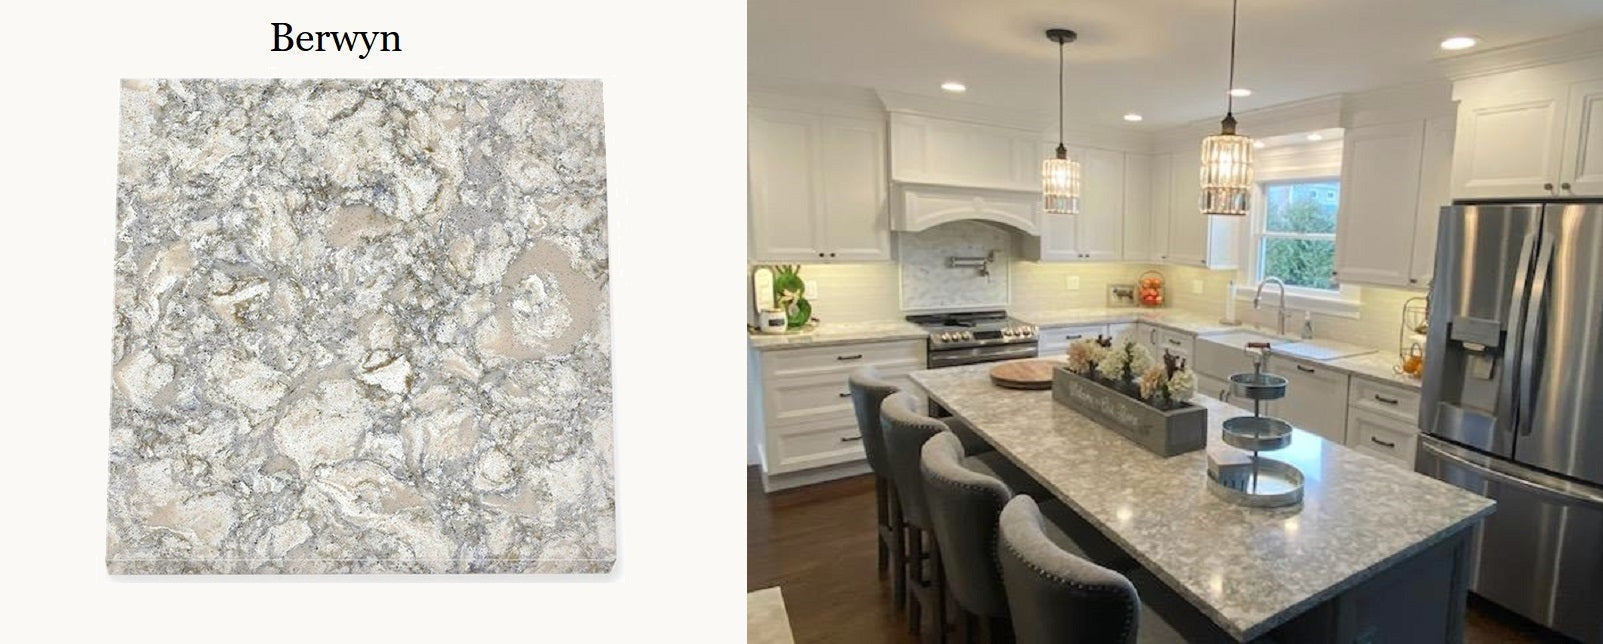 Cambrai Berwyn on white and gray kitchen by DirectCabinets.com